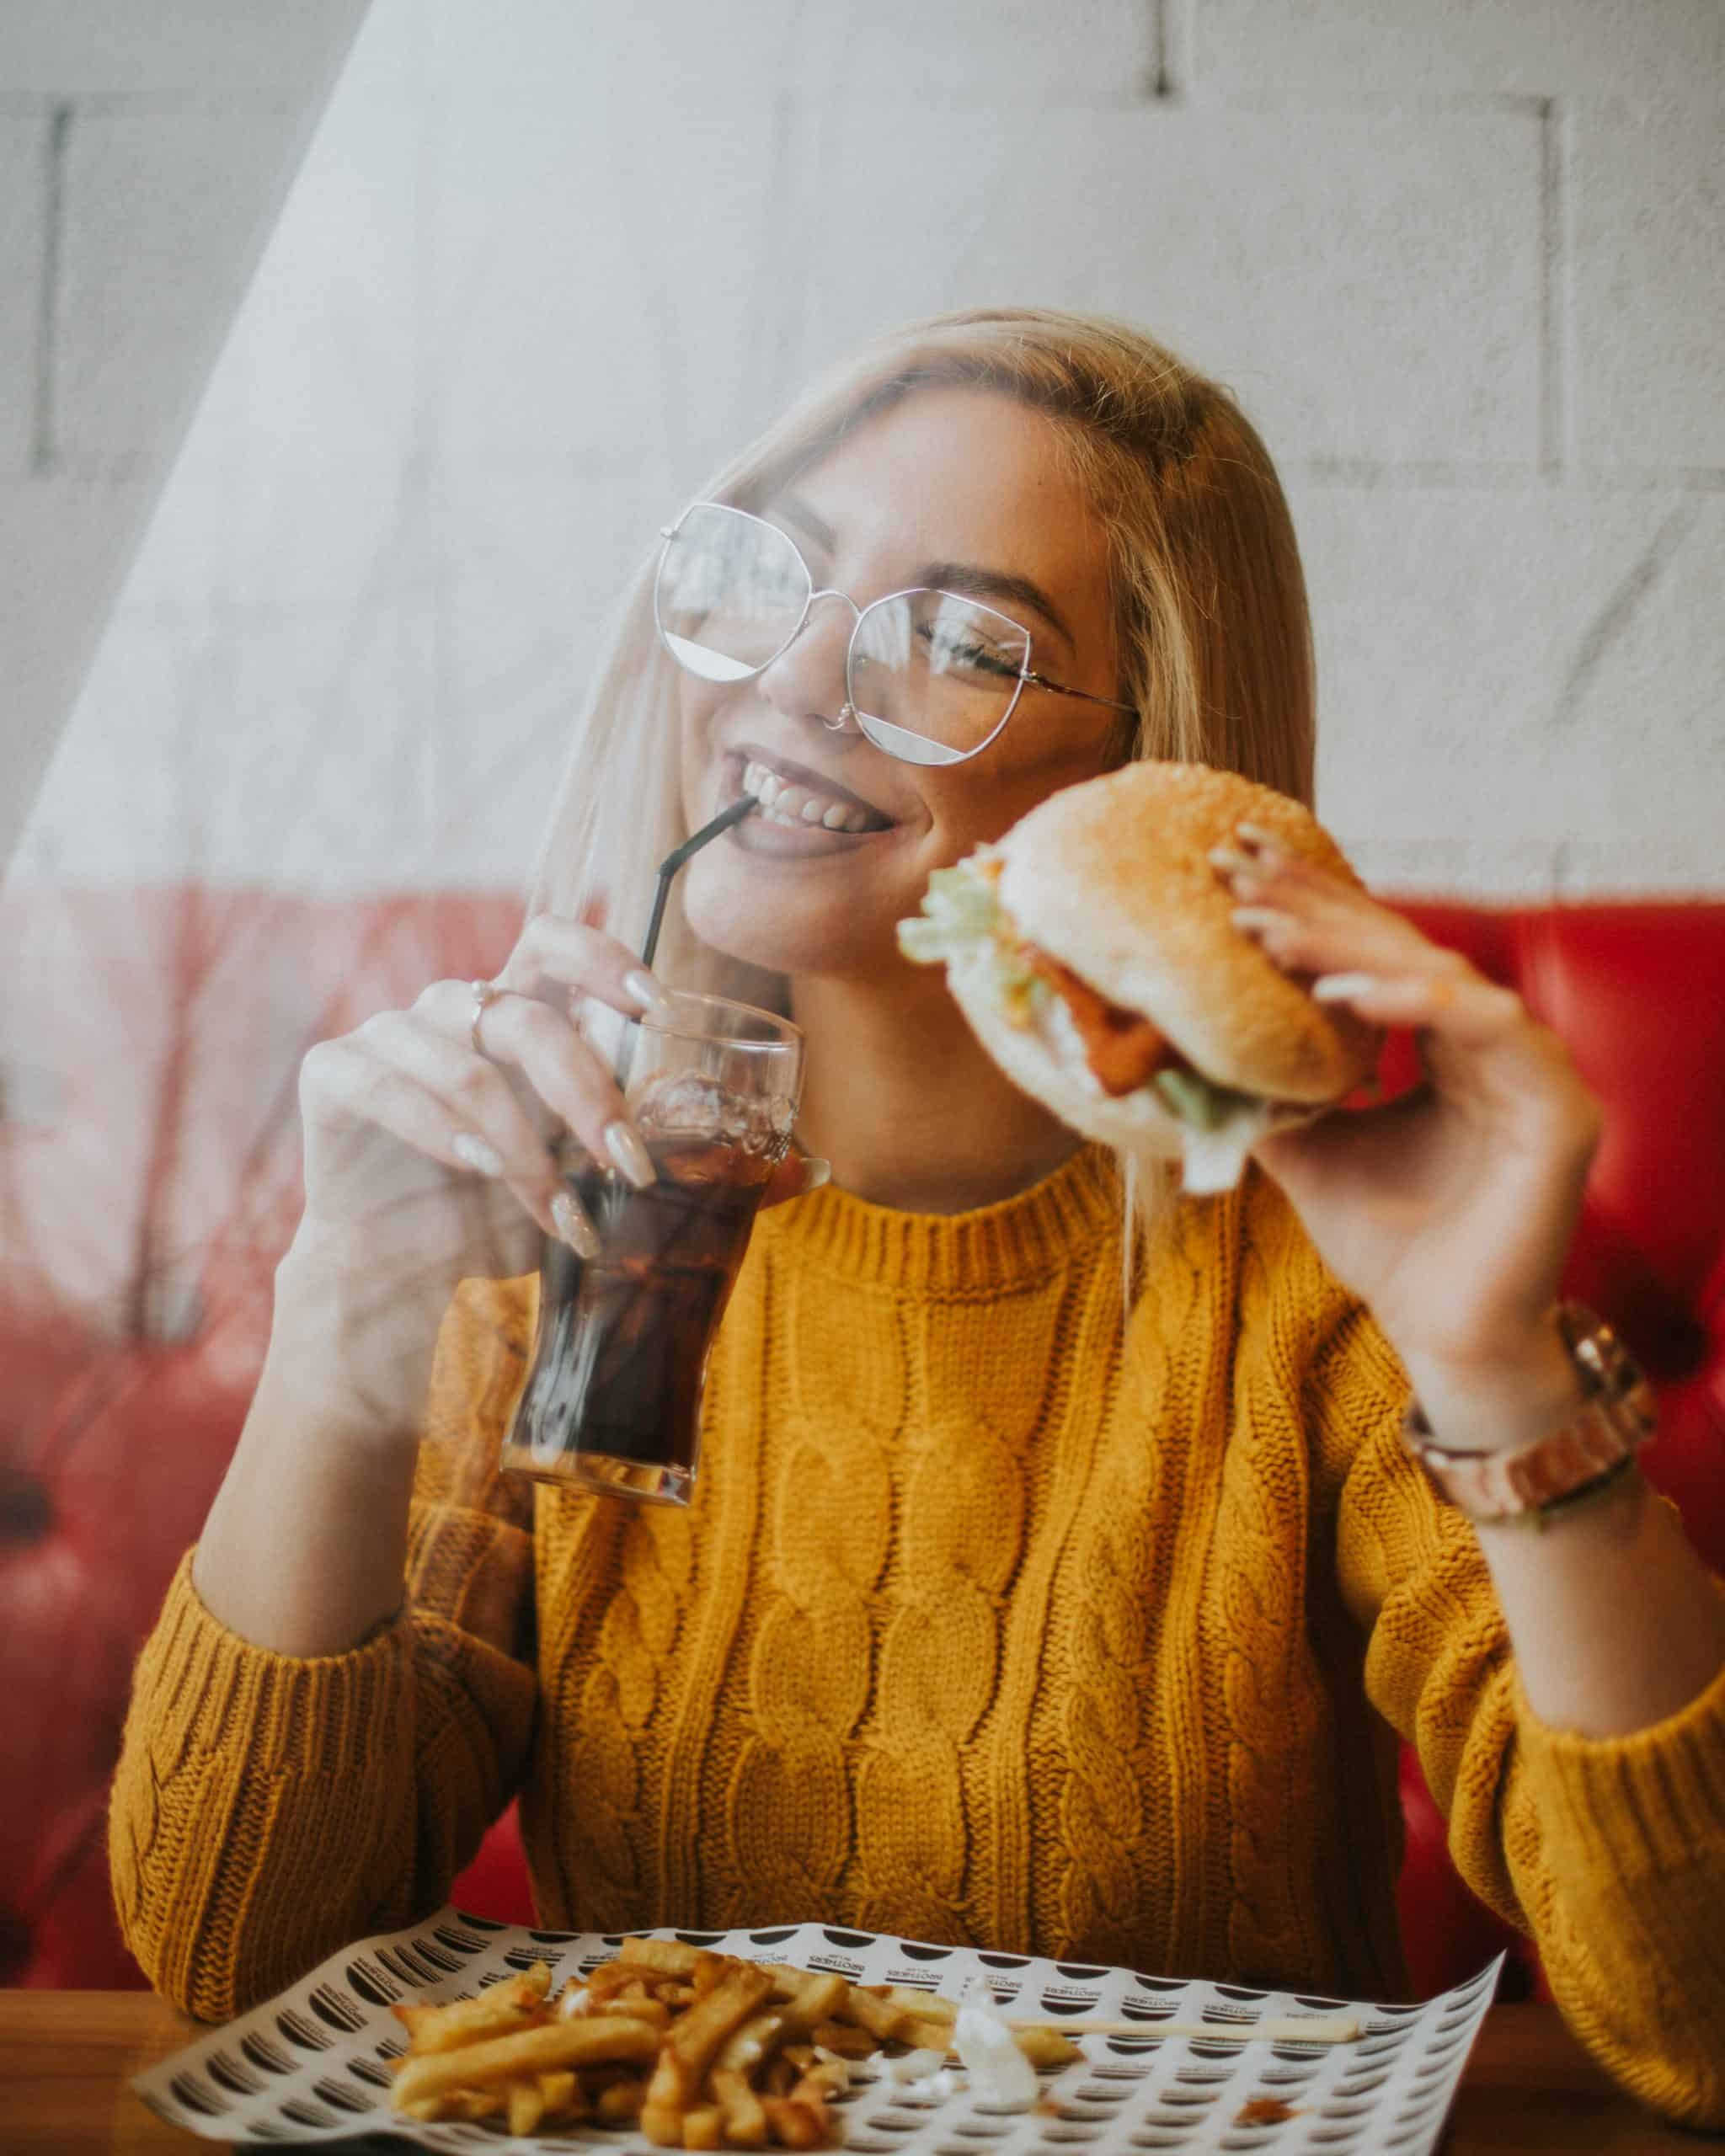 Woman eating burger and coke practicing positive food language